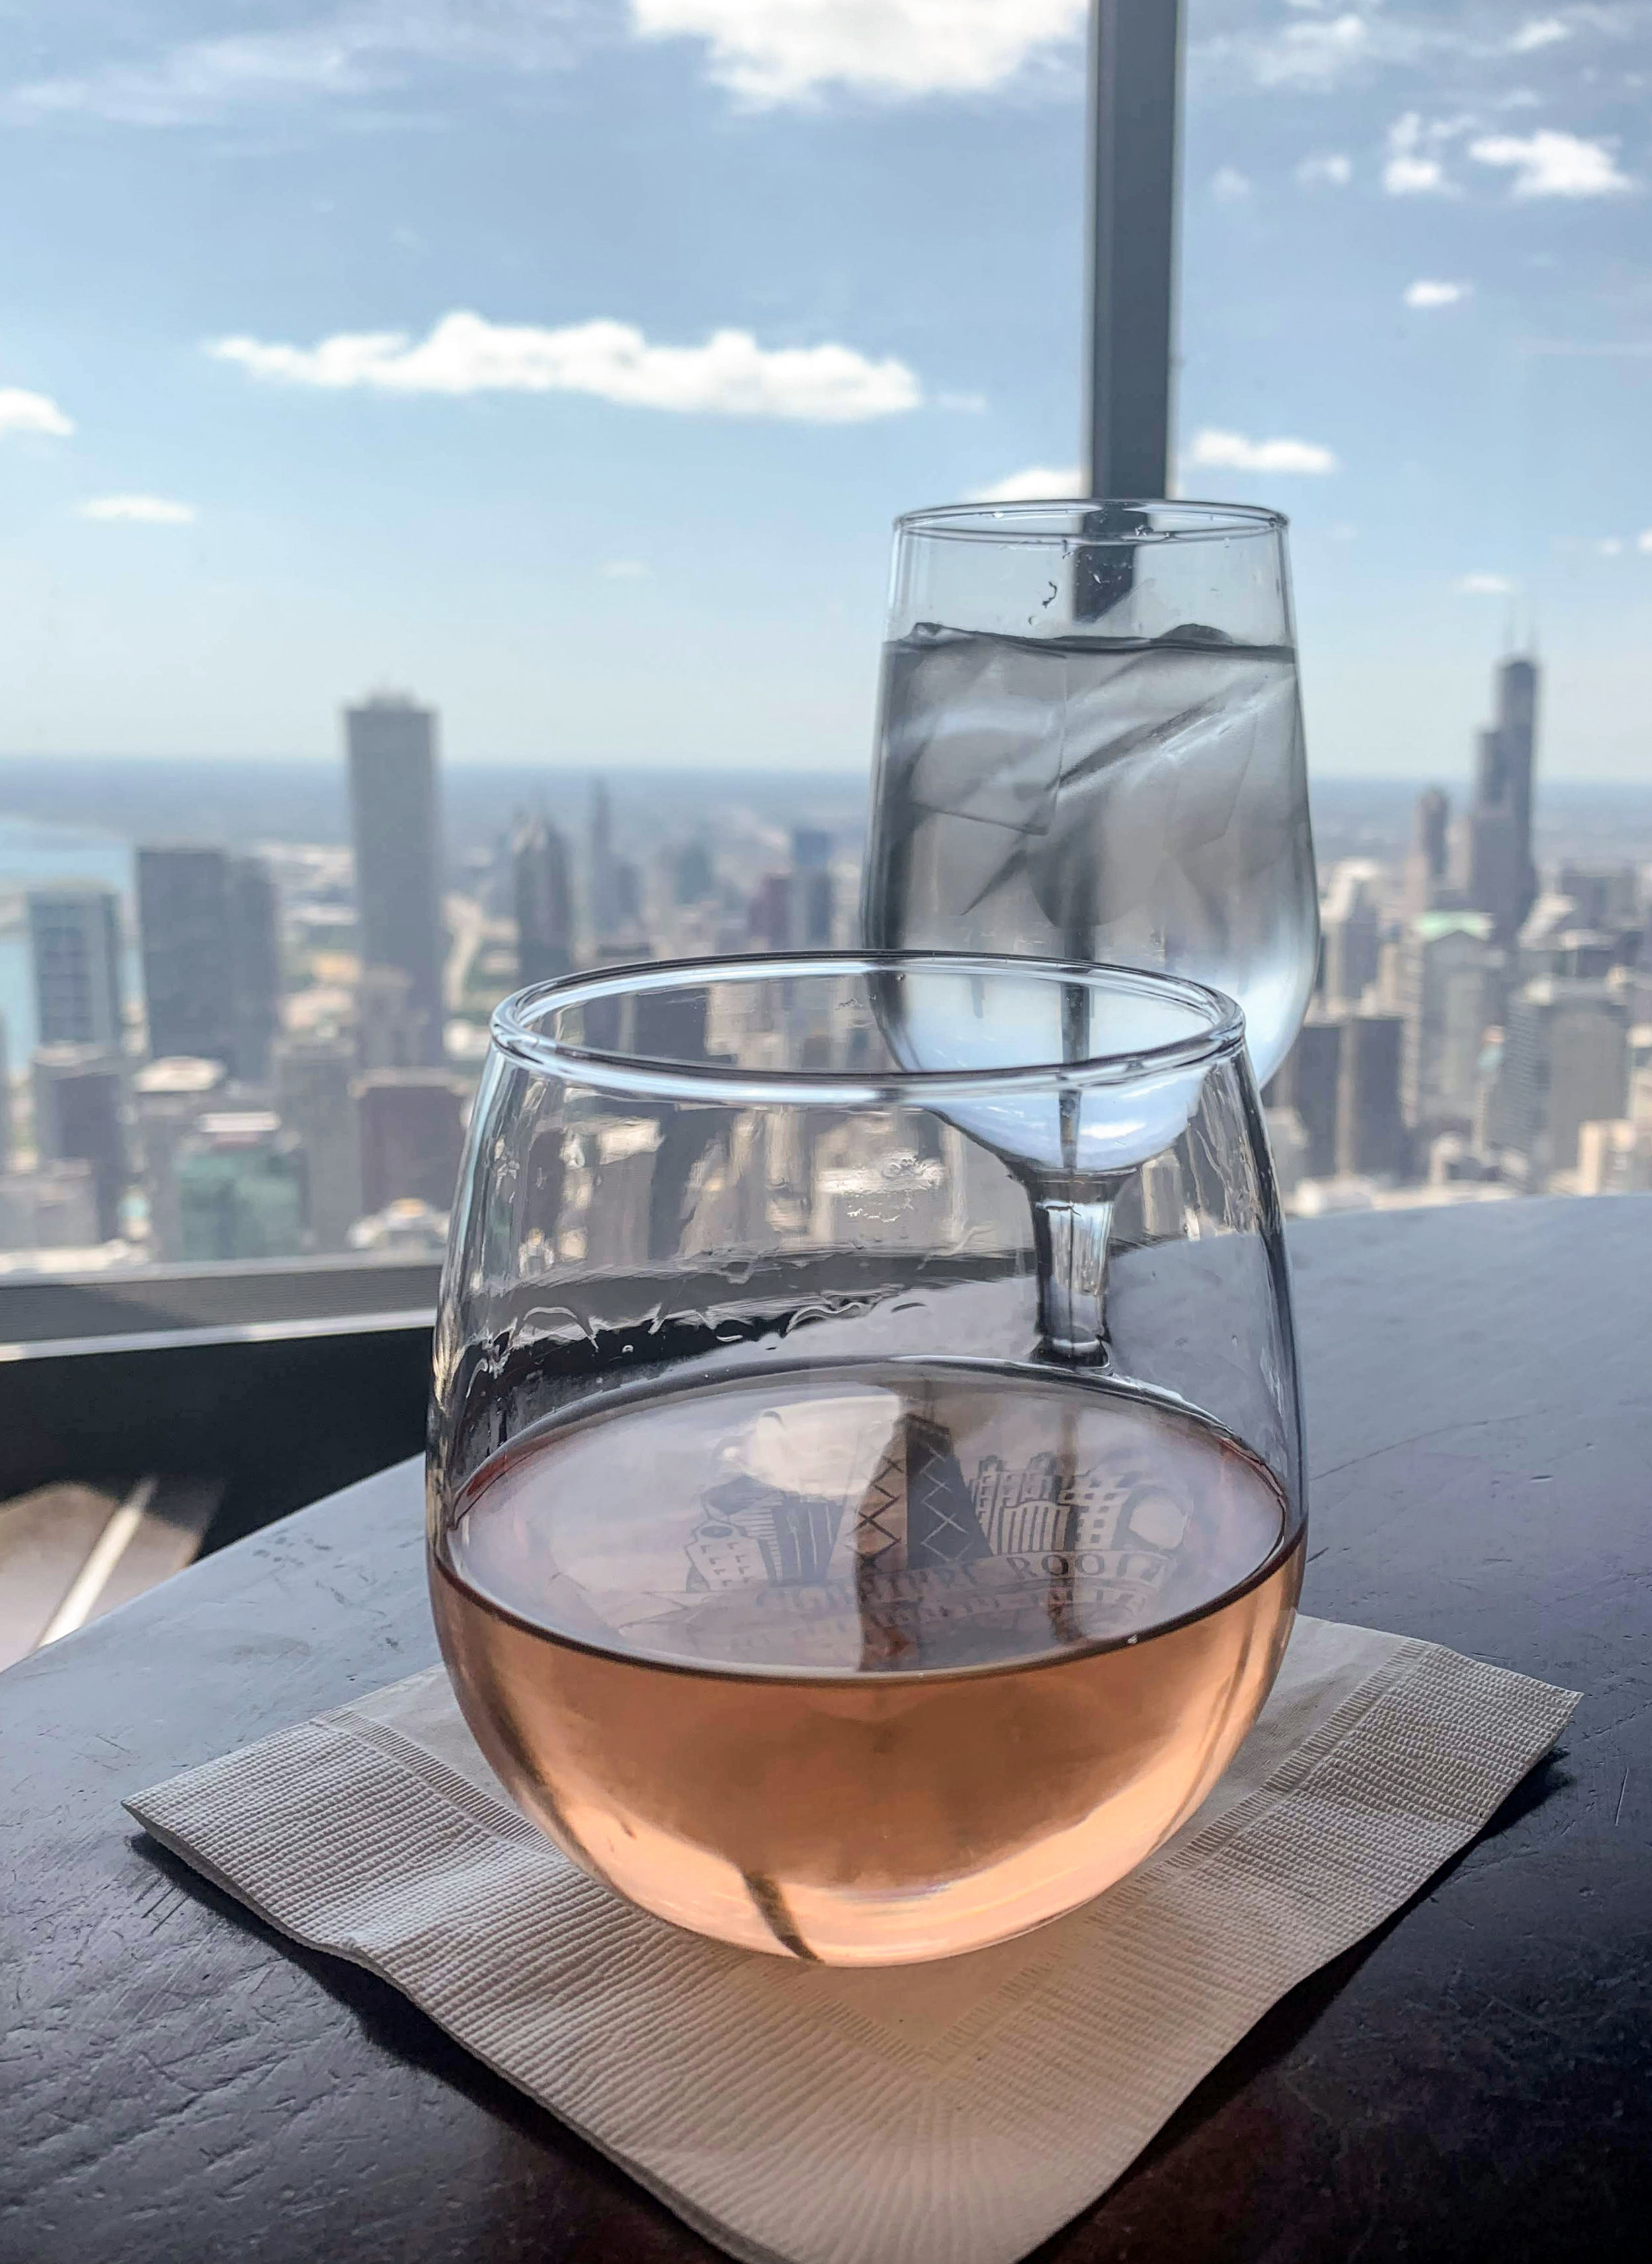 This time she was rosé on the 96th floor of the John Hancock Building with views as far as the eyes could see, a long walk down The Magnificent Mile, along the Chicago River, and through the theatre district, an amazing performance of   Hamilton  , and drinks at the Palmer House.